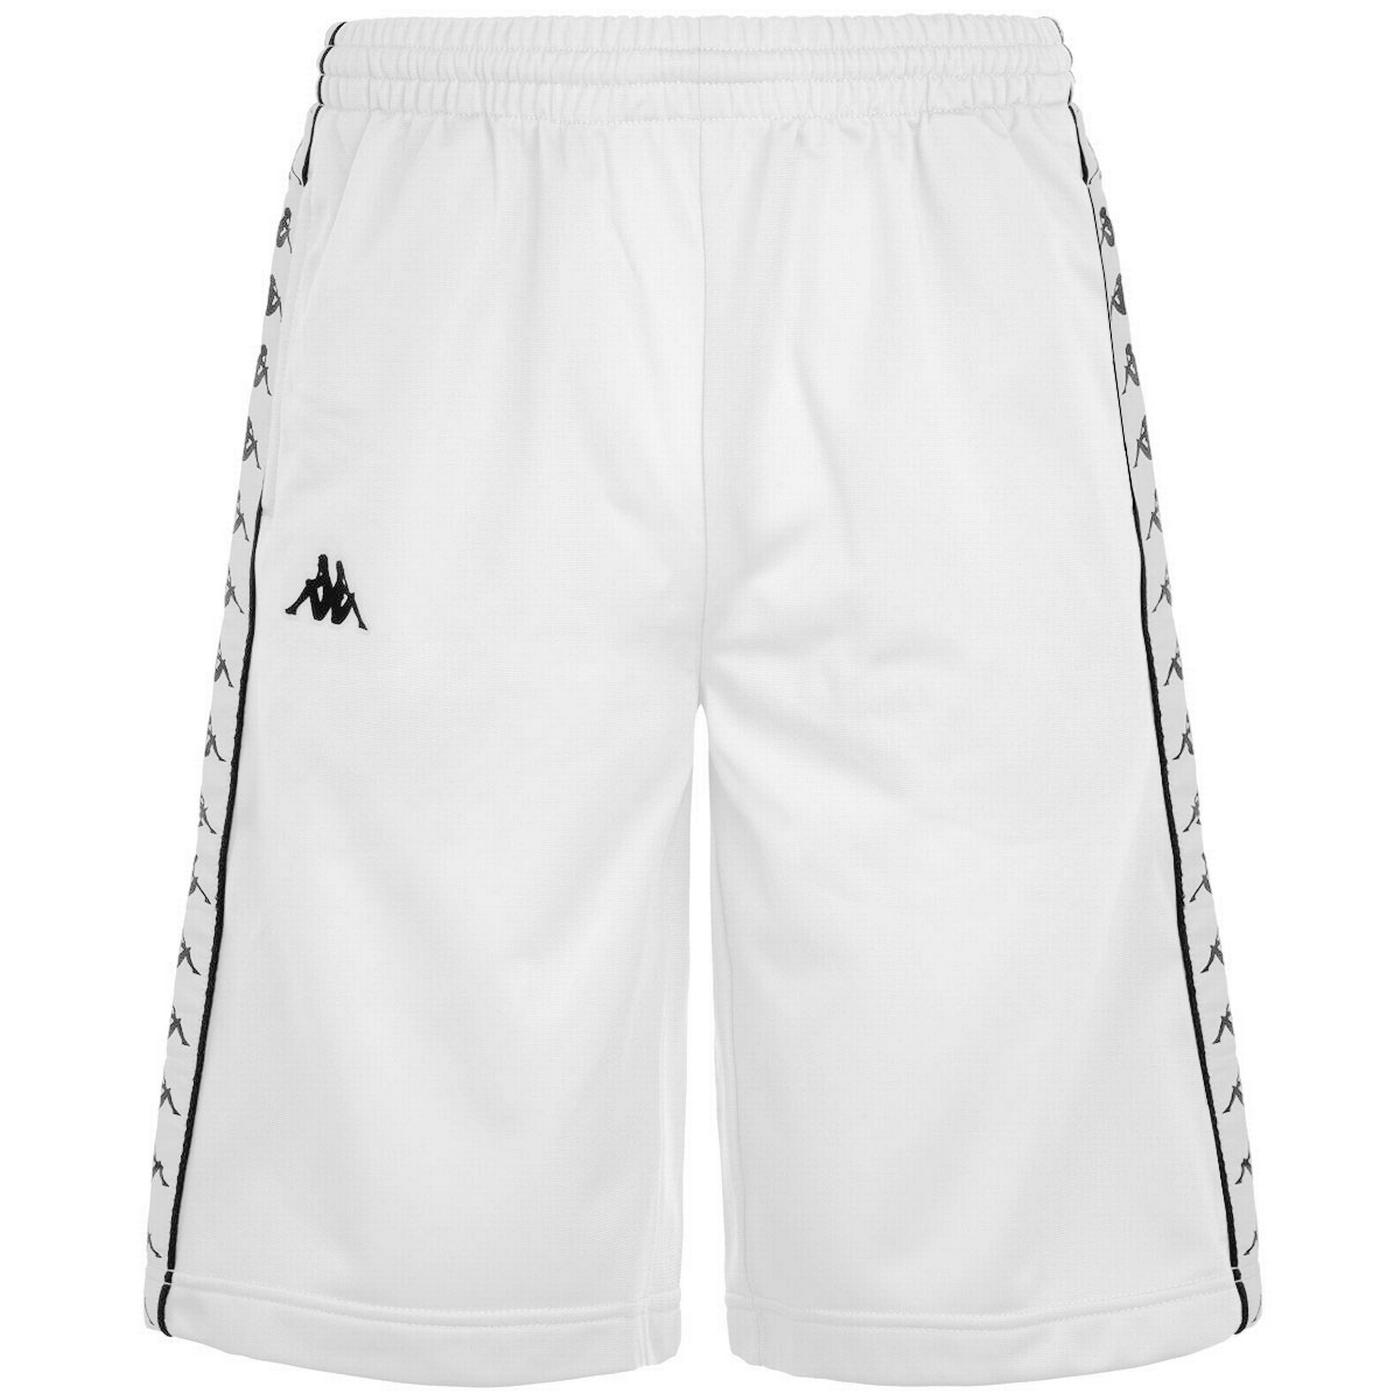 Snapswell 222 Banda KAPPA Retro Football Shorts W